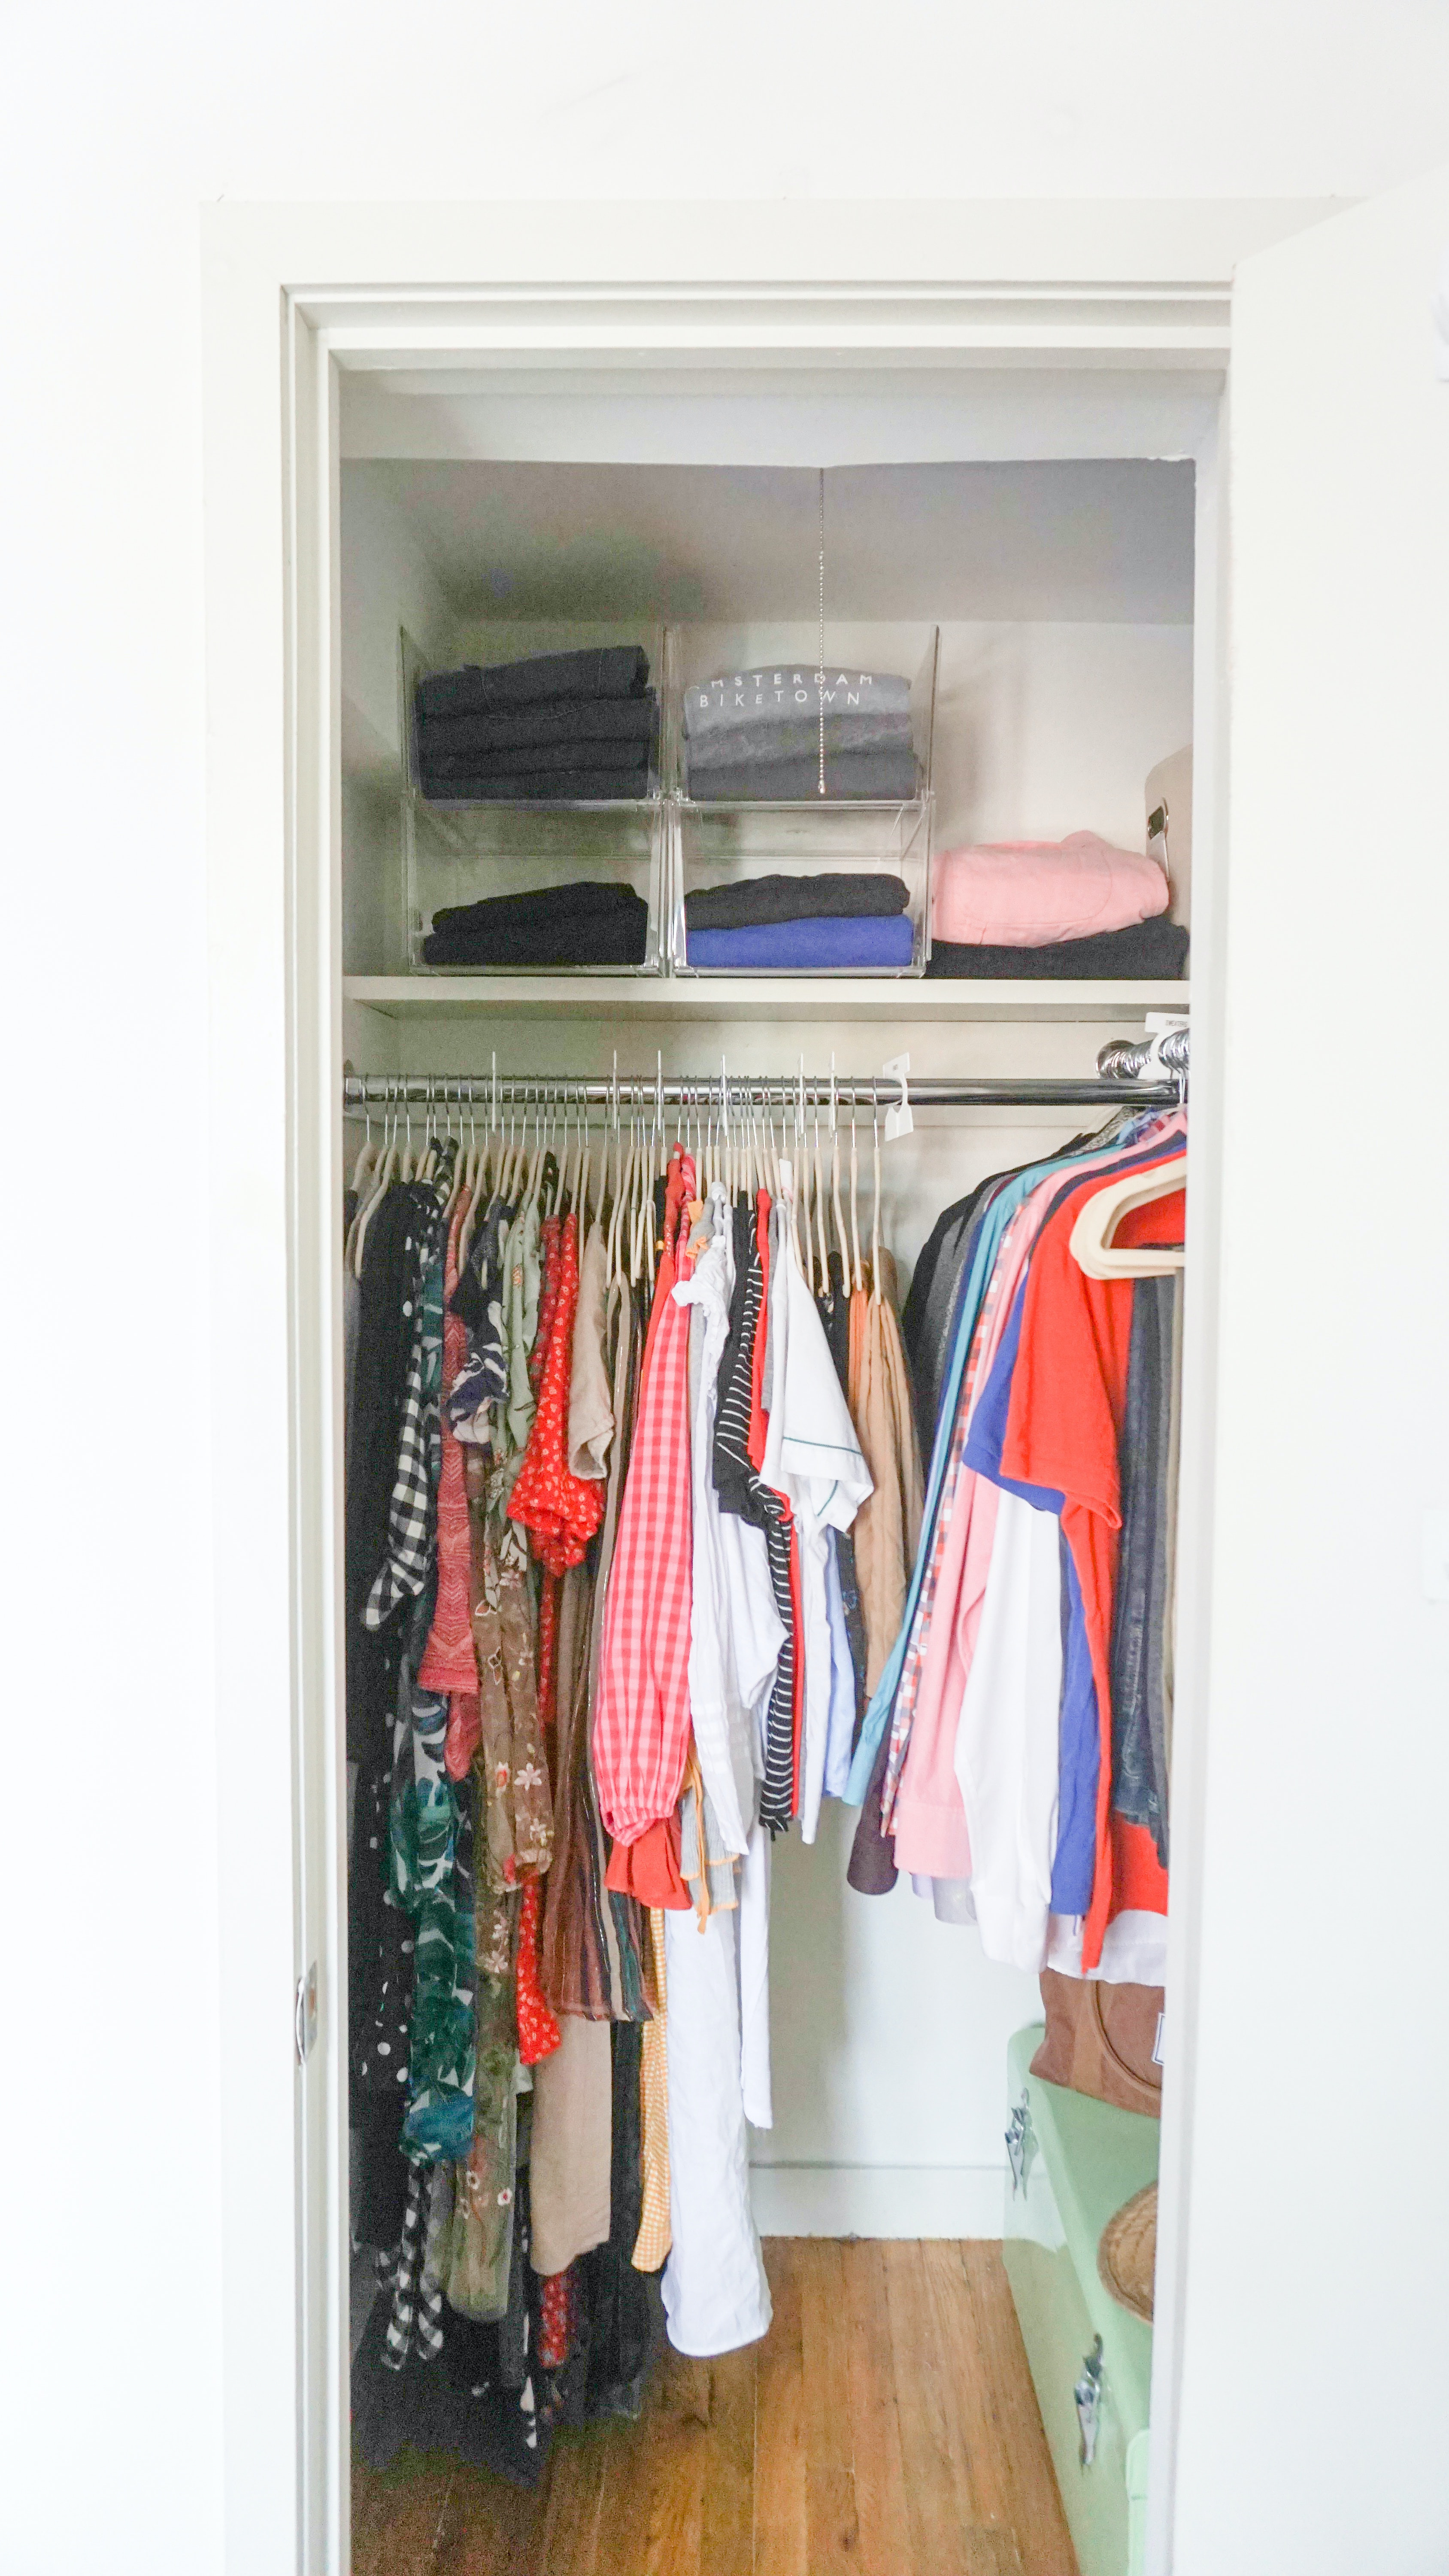 How To Organize A Small Closet According To A Professional